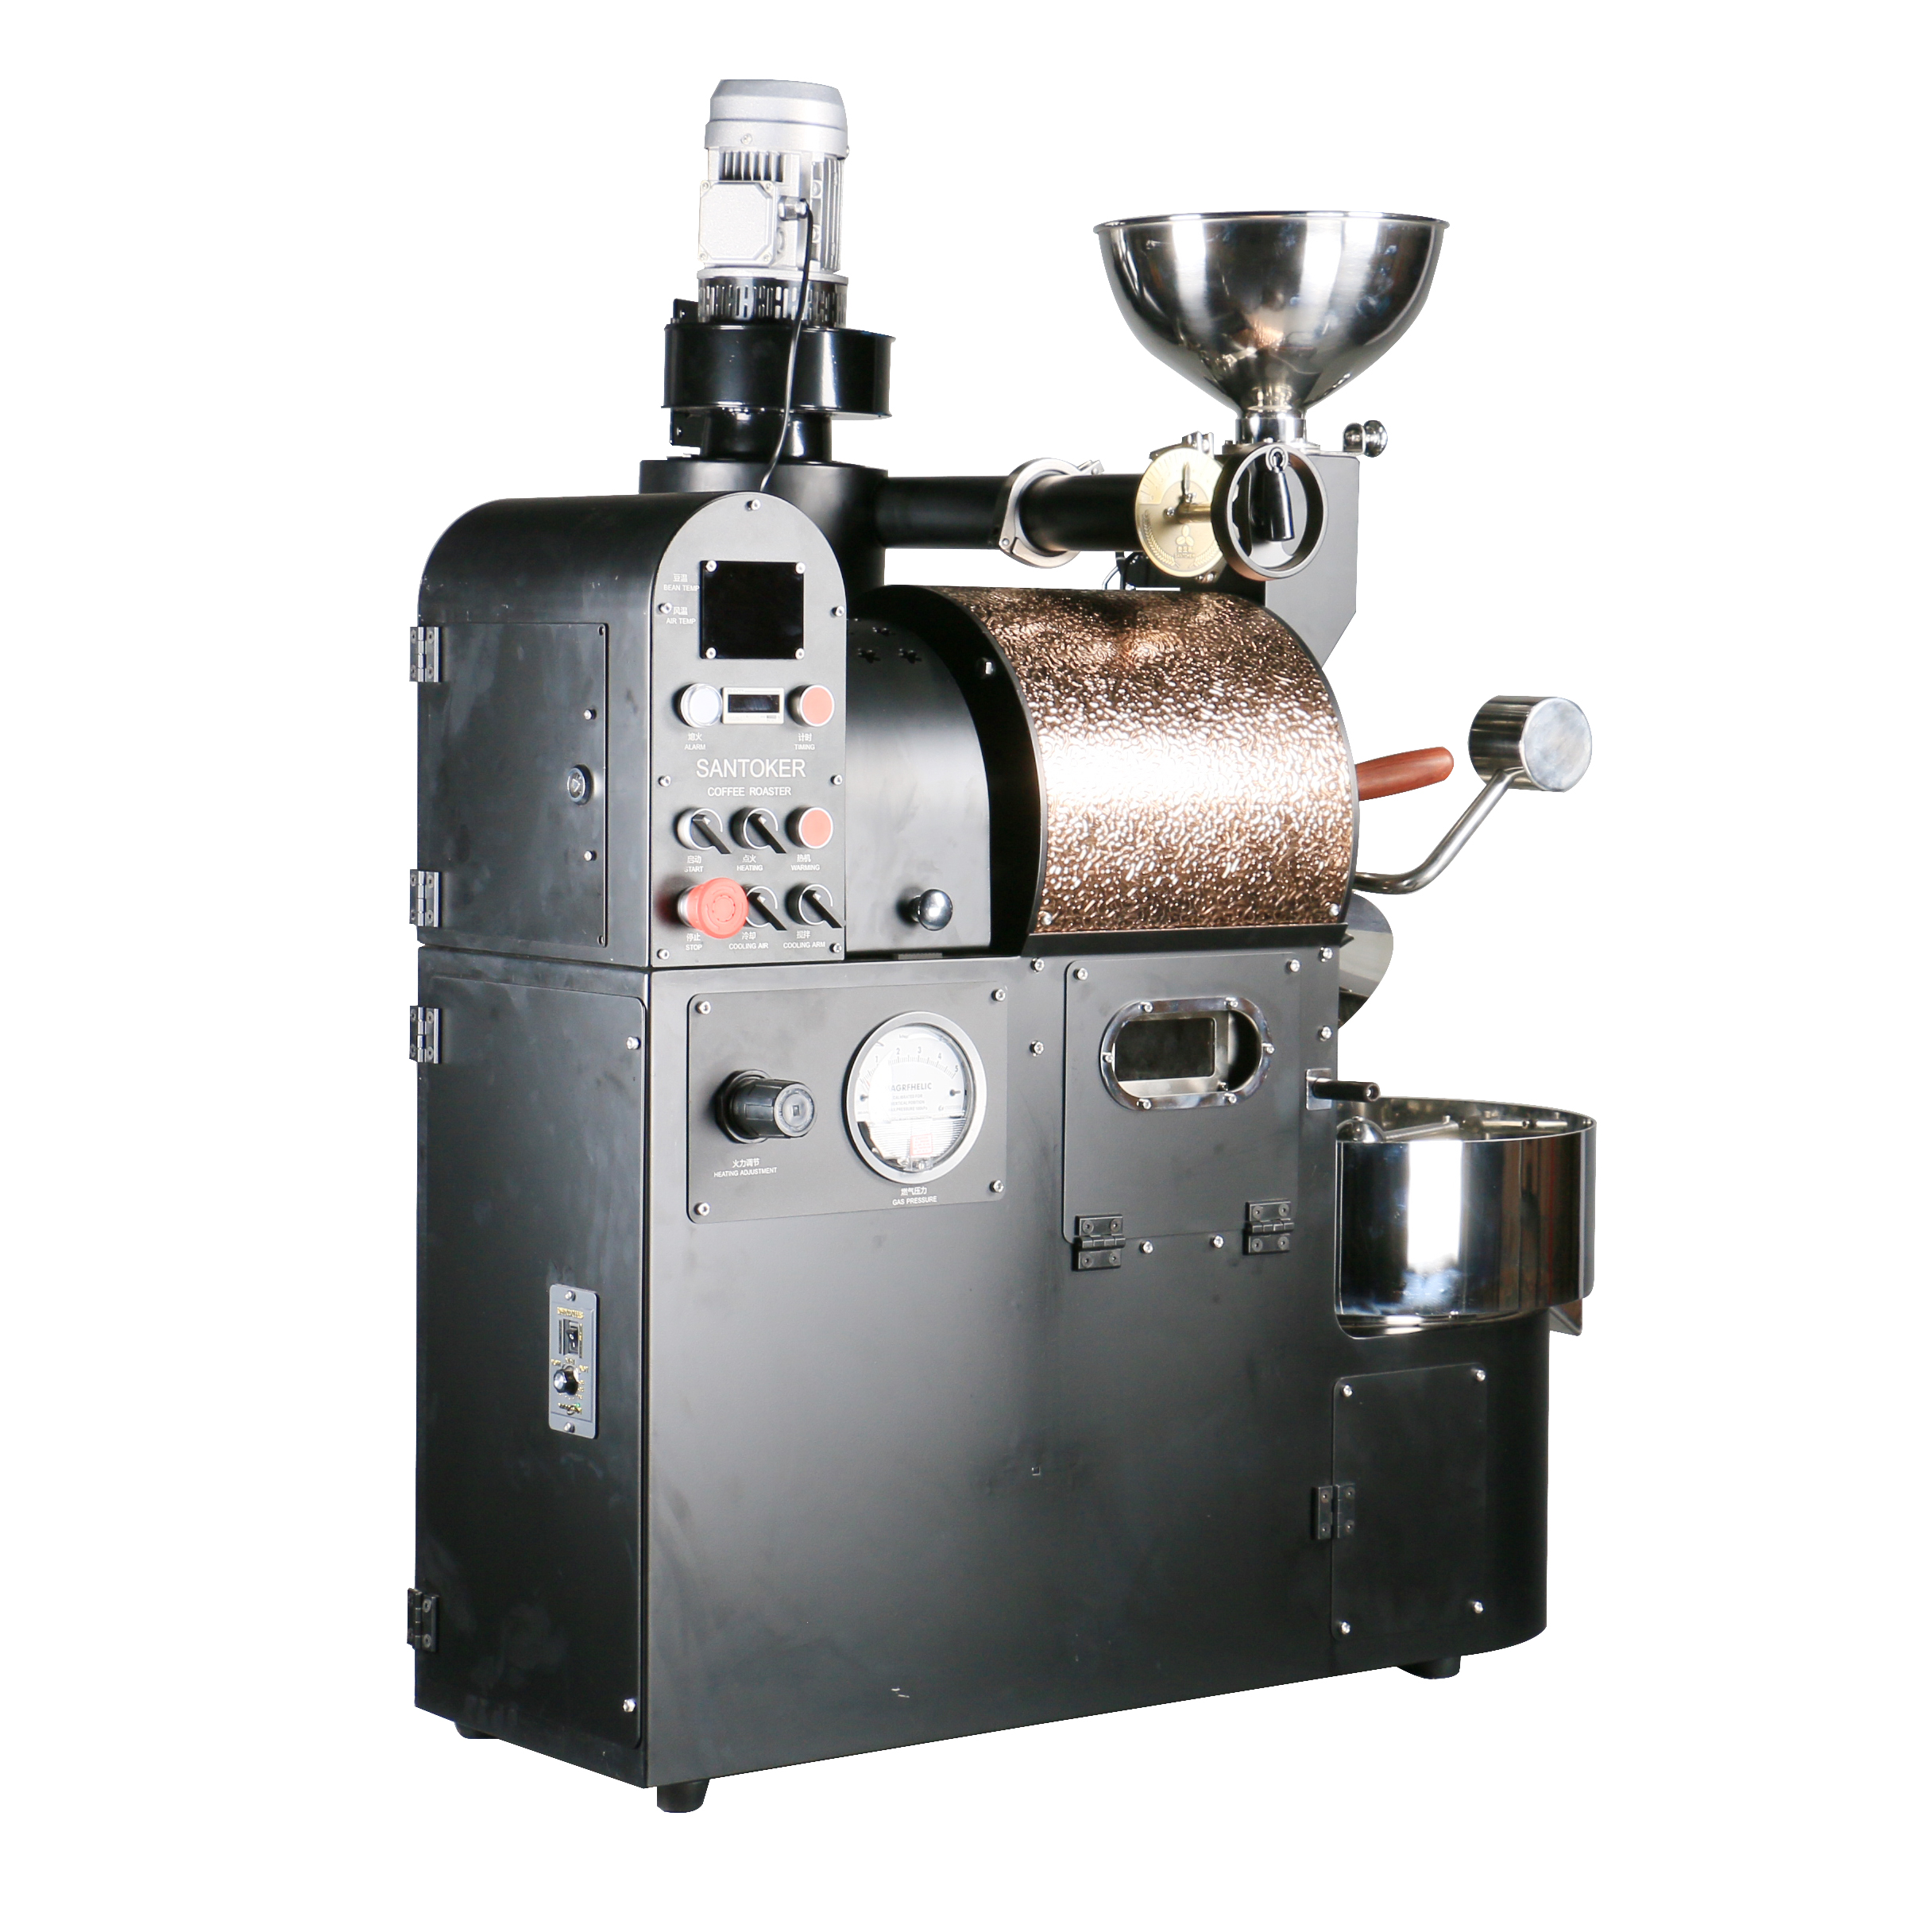 Santoker 1.5kg coffee roaster